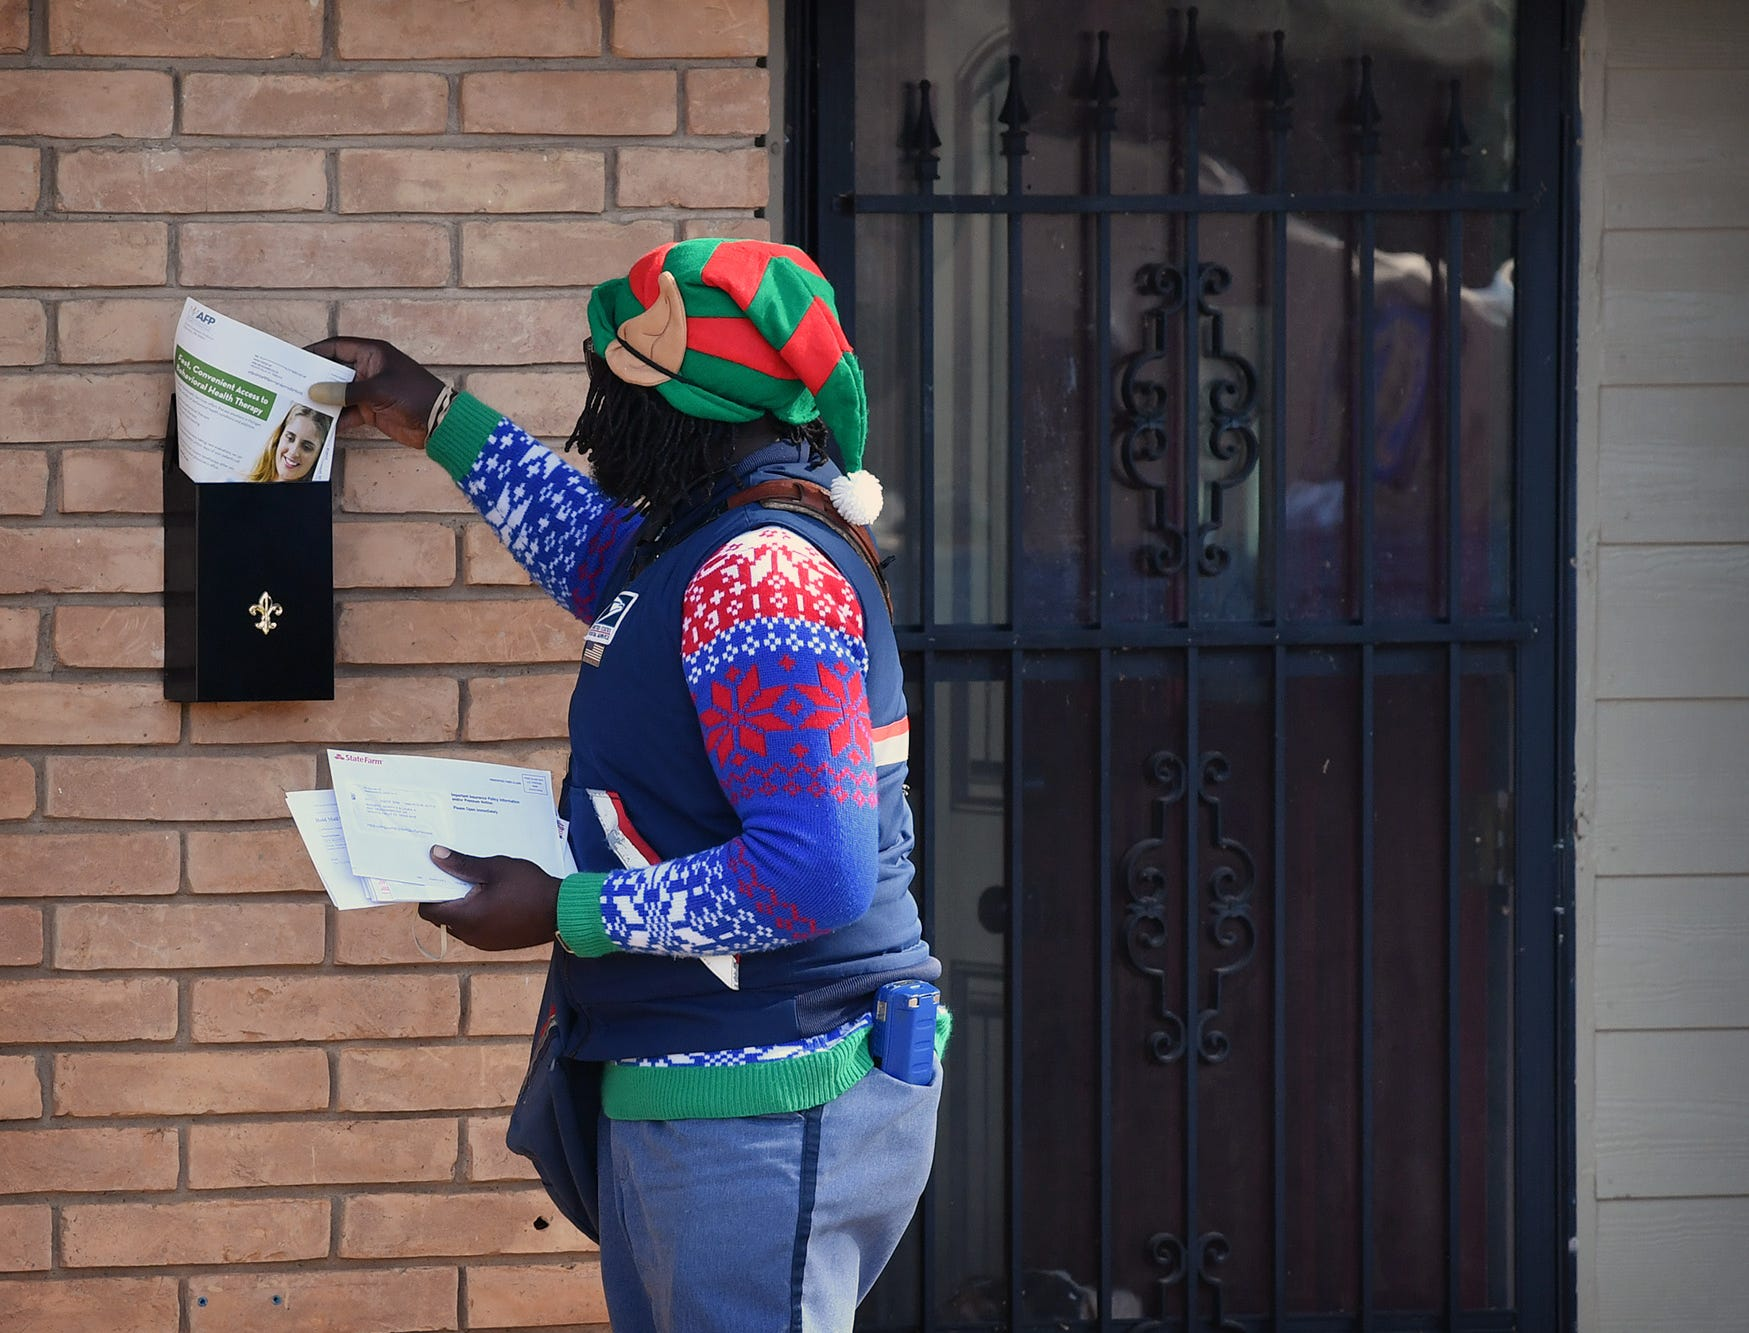 Mail carrier Joe Forbins is popular with the customers on his route  as he delivers their mail with a cheerful smile, Christmas sweater and an elf hat.